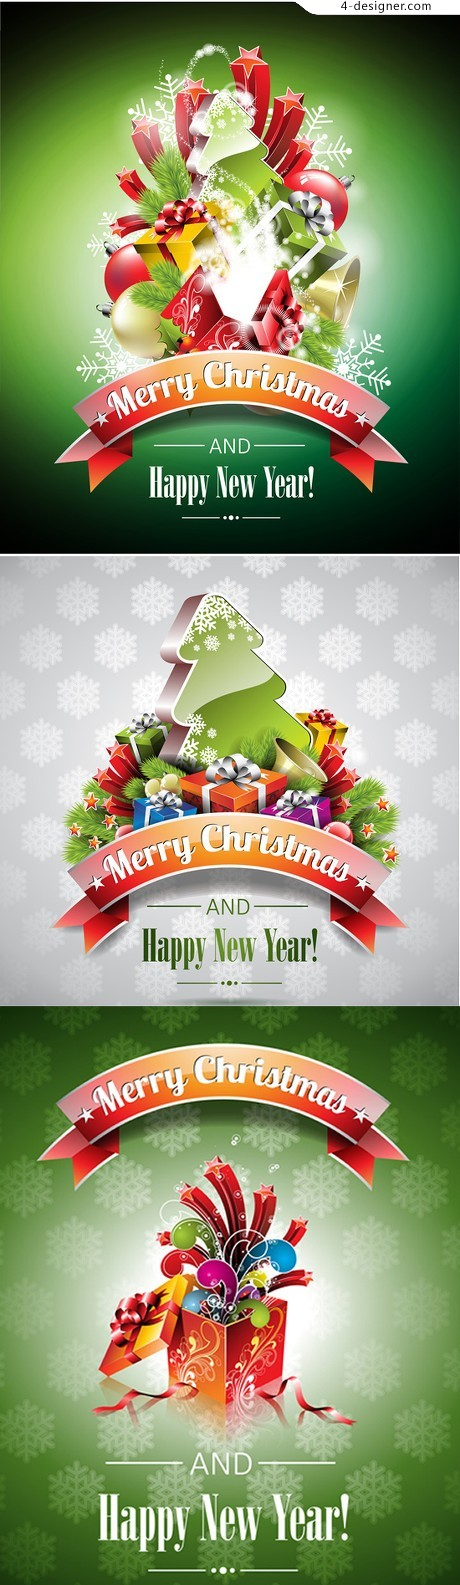 Christmas poster template vector material